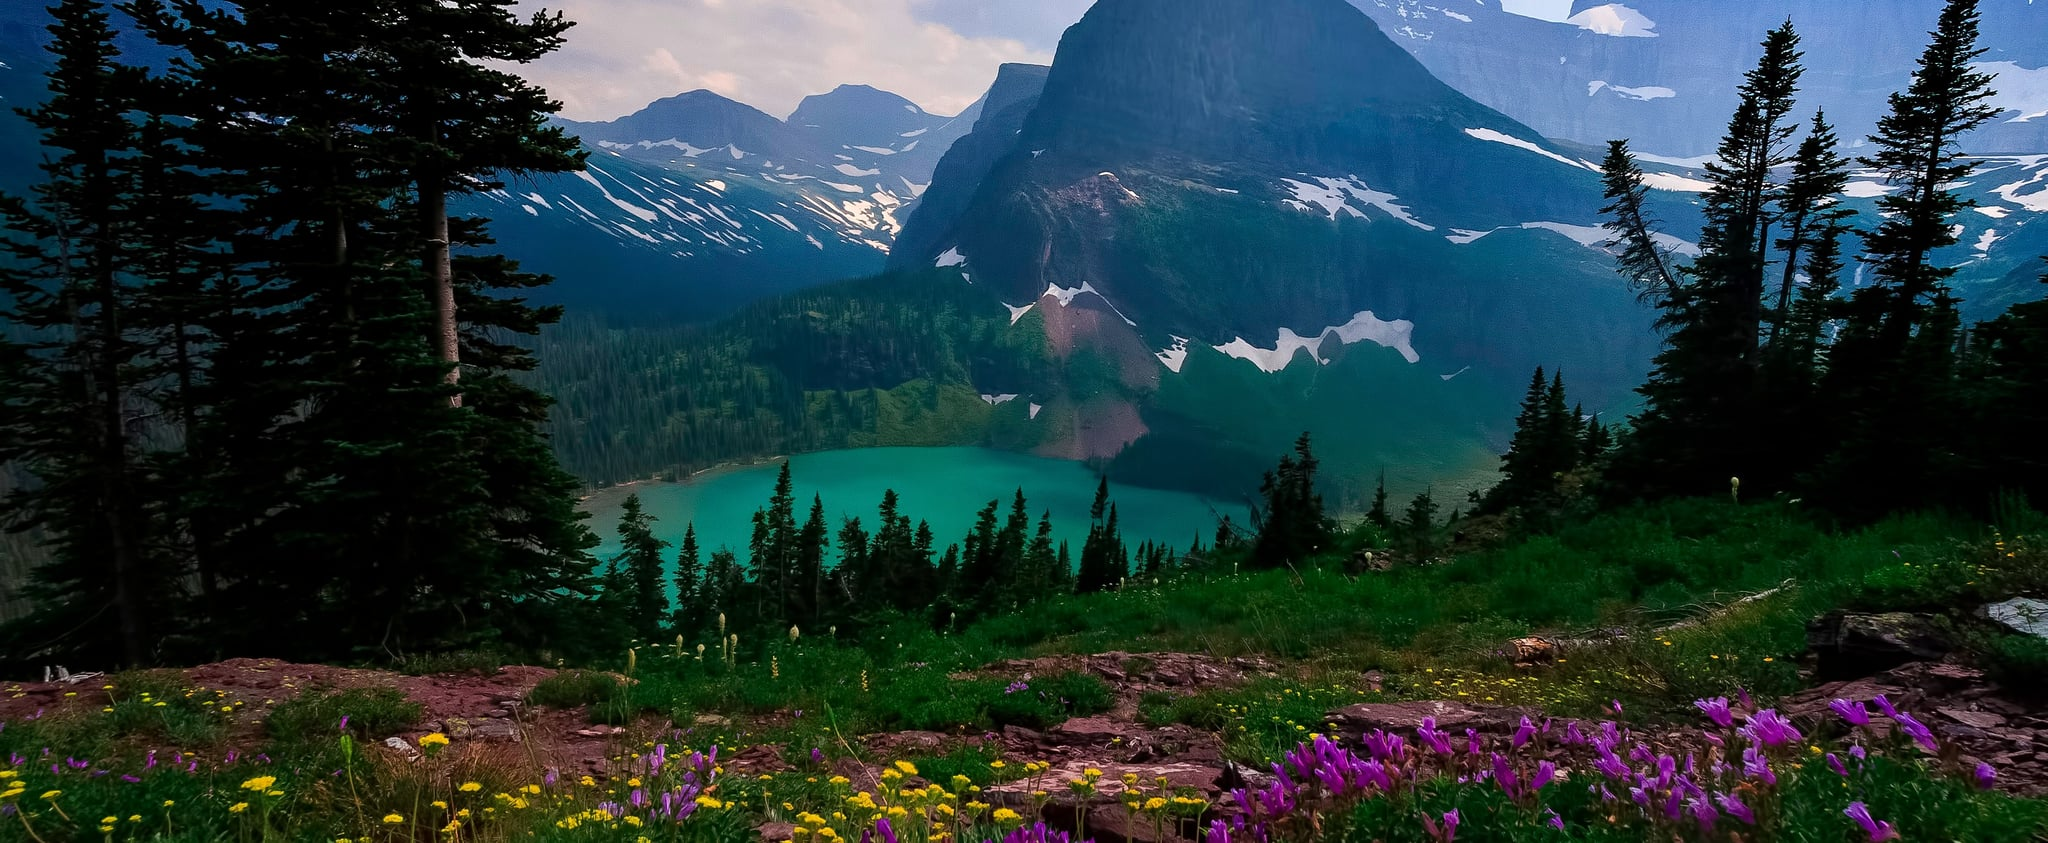 Best Hiking Trails by State